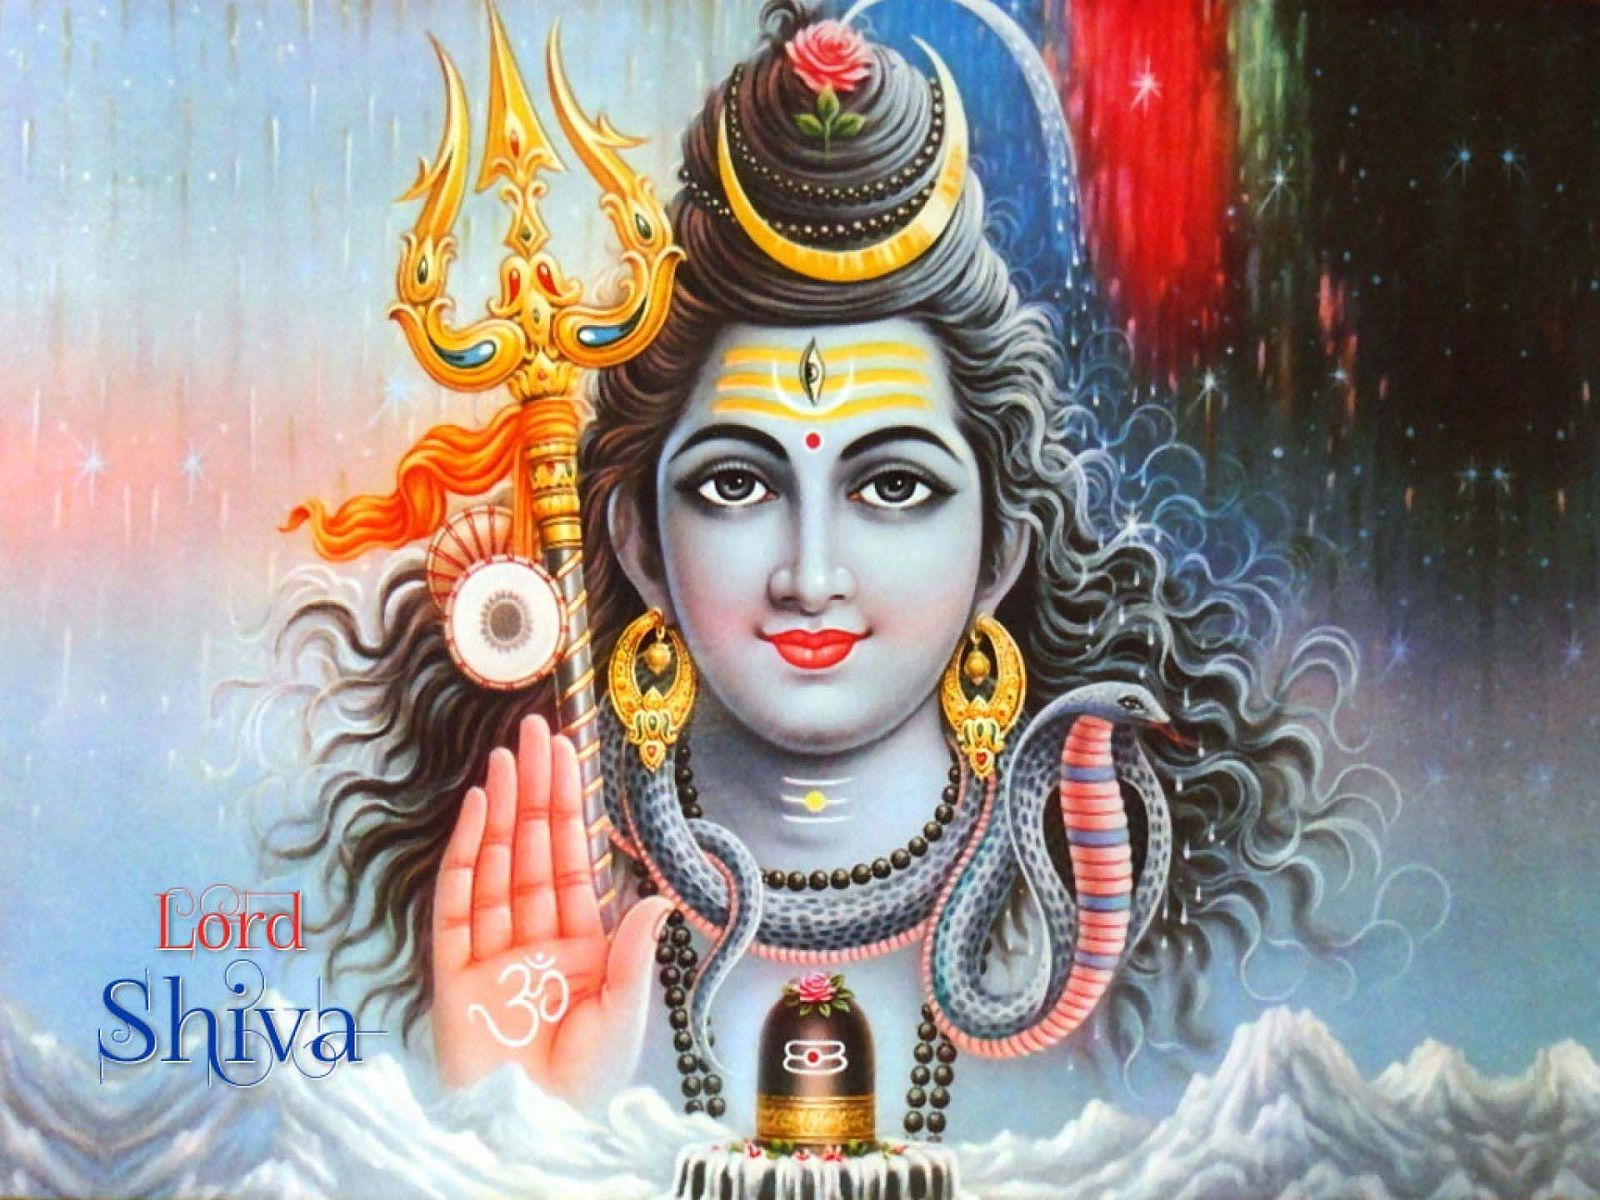 Lord Shiva full HD new wallpaper | HD Wallpapers Rocks ...